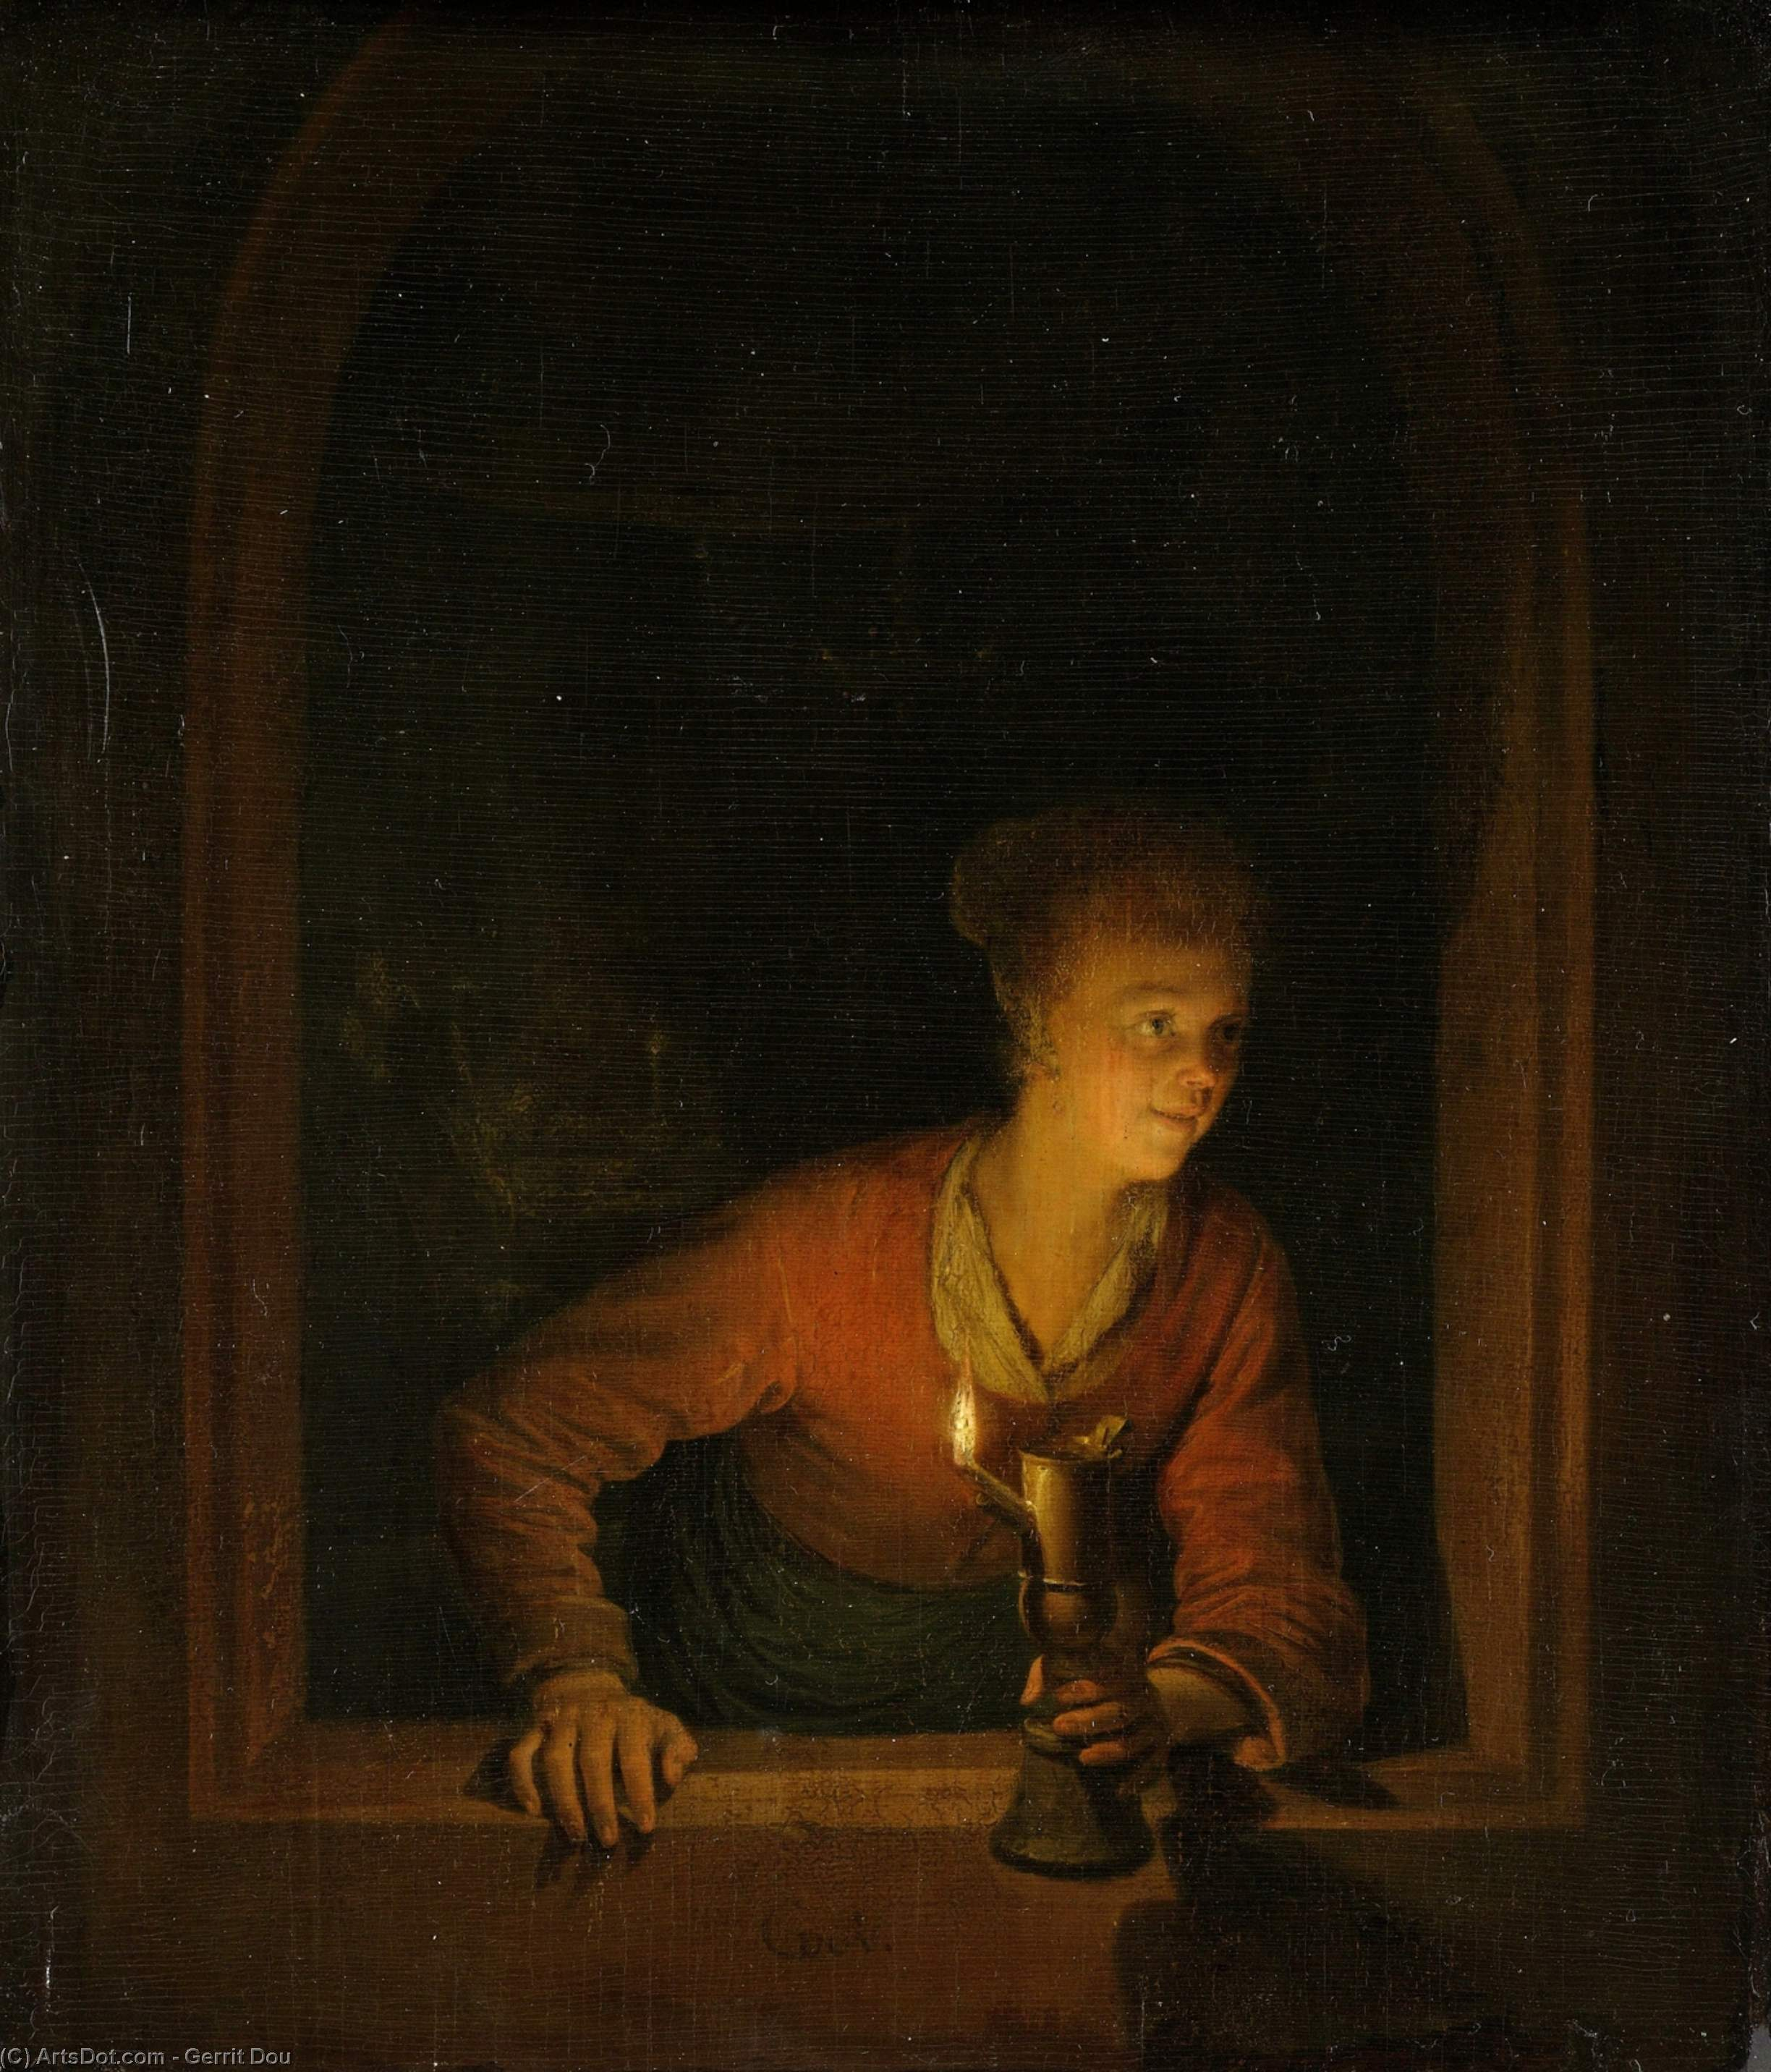 Girl with Burning Oil Lamp, Oil On Panel by Gerrit Dou